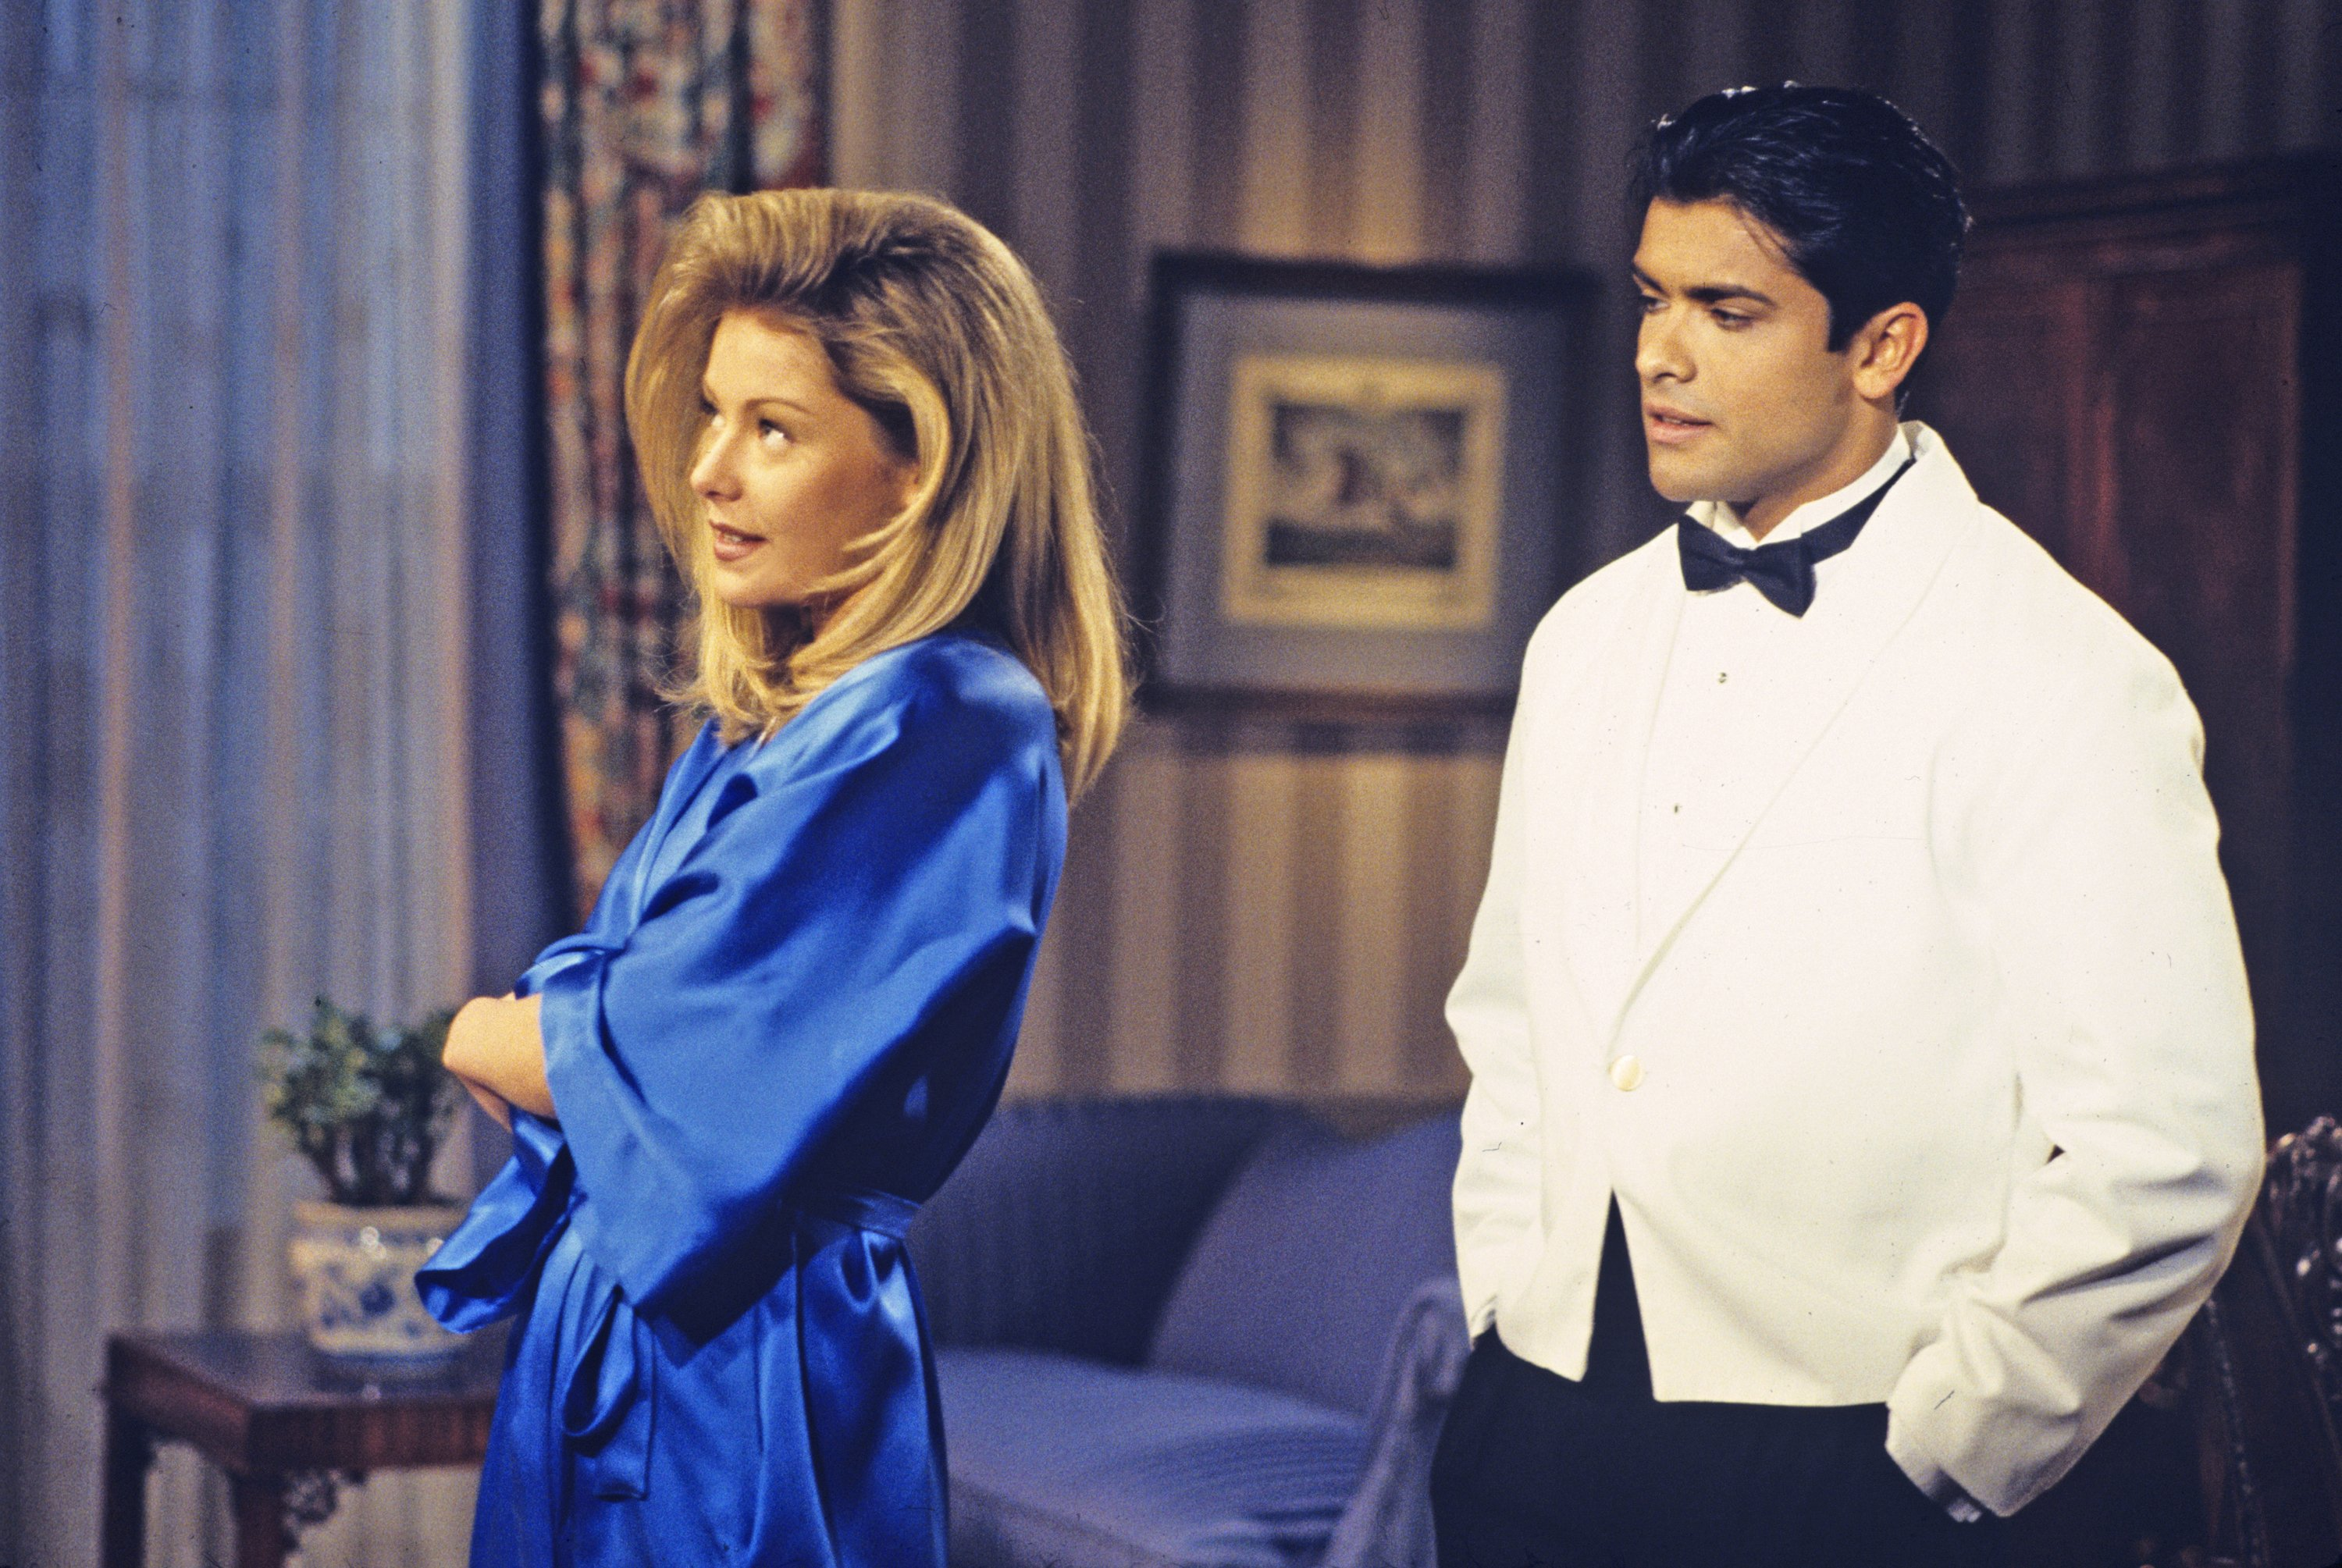 """Kelly Ripa (Hayley) and Mark Consuelos (Mateo) in a scene on Walt Disney Television via Getty Images Daytime's """"All My Children"""", in 1995. 